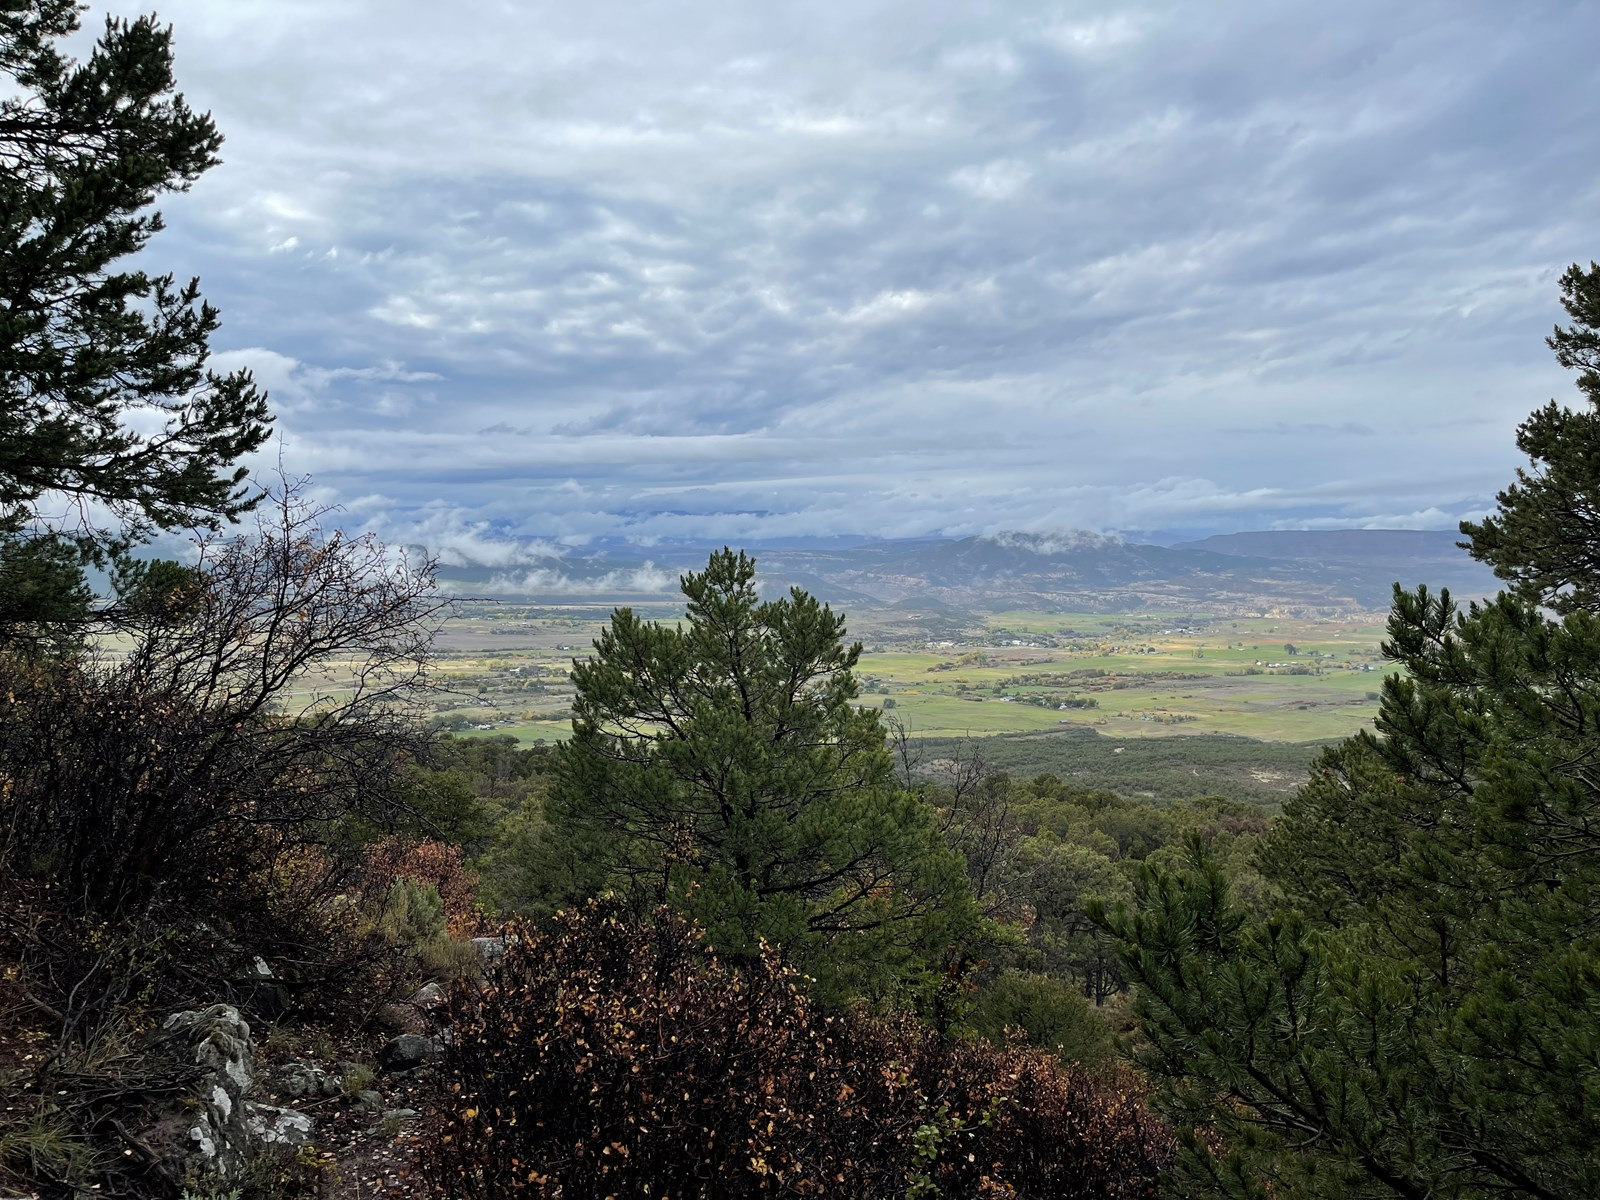 Hunting Property Borders Public Land For Sale In Colorado